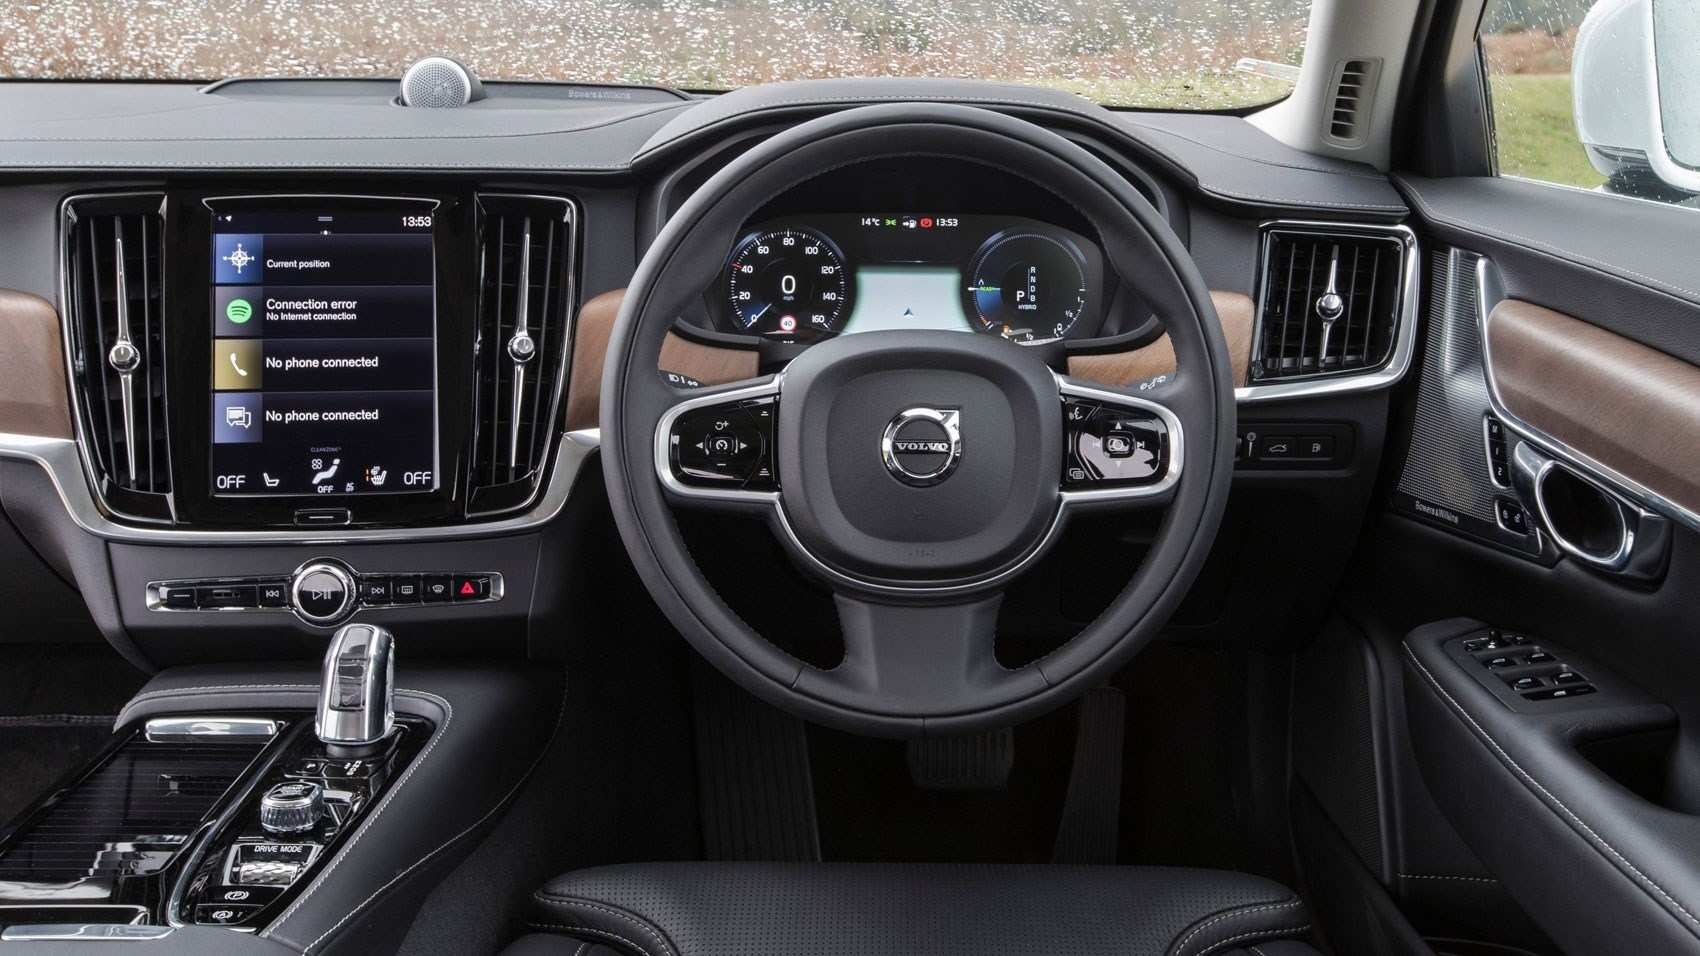 16 New Volvo Speed Limit 2020 Spesification for Volvo Speed Limit 2020